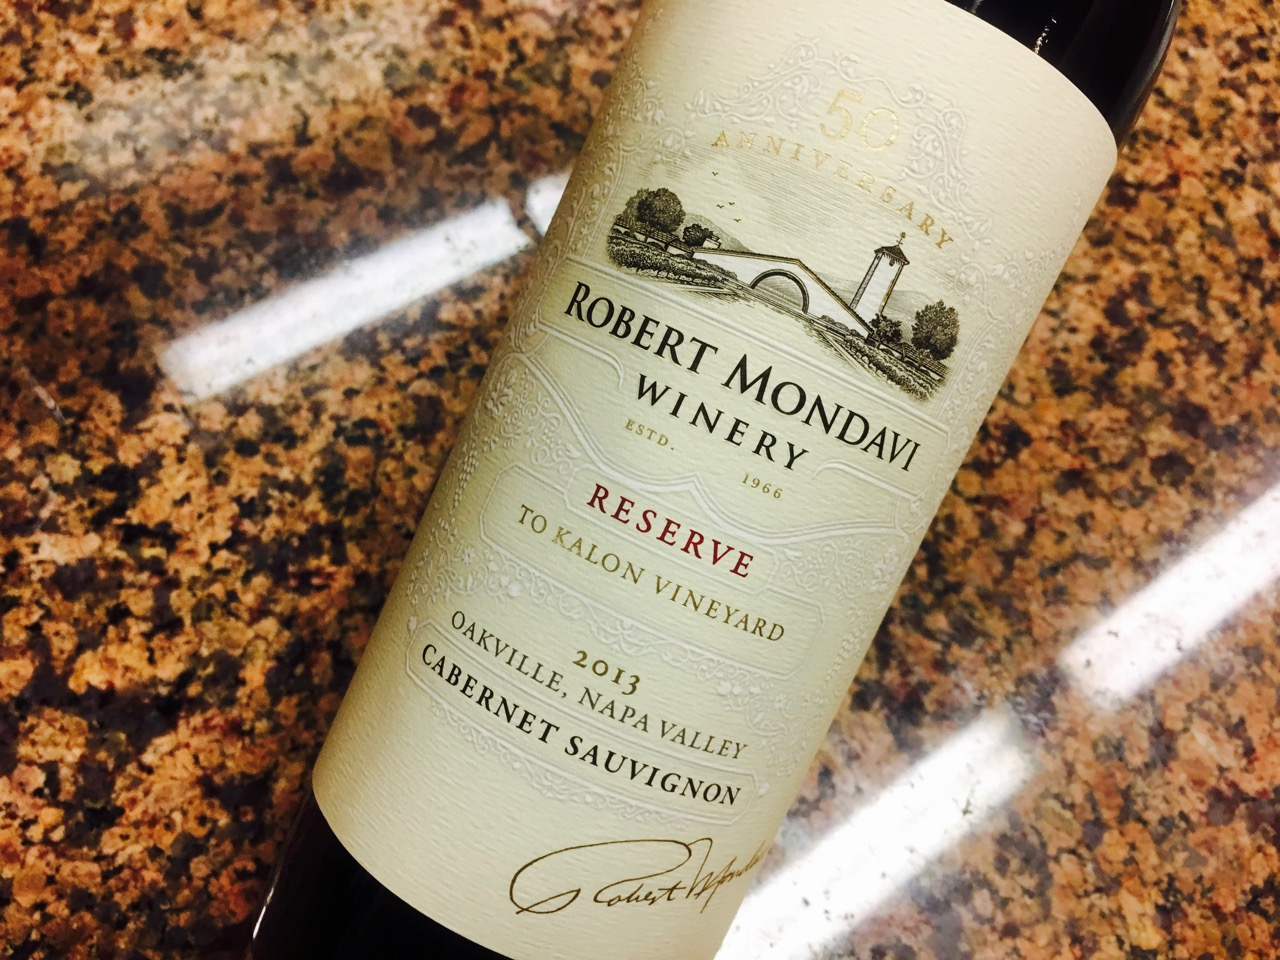 2013 Robert Mondavi Winery Cabernet Sauvignon Reserve To Kalon Vineyard Oakville Napa Valley